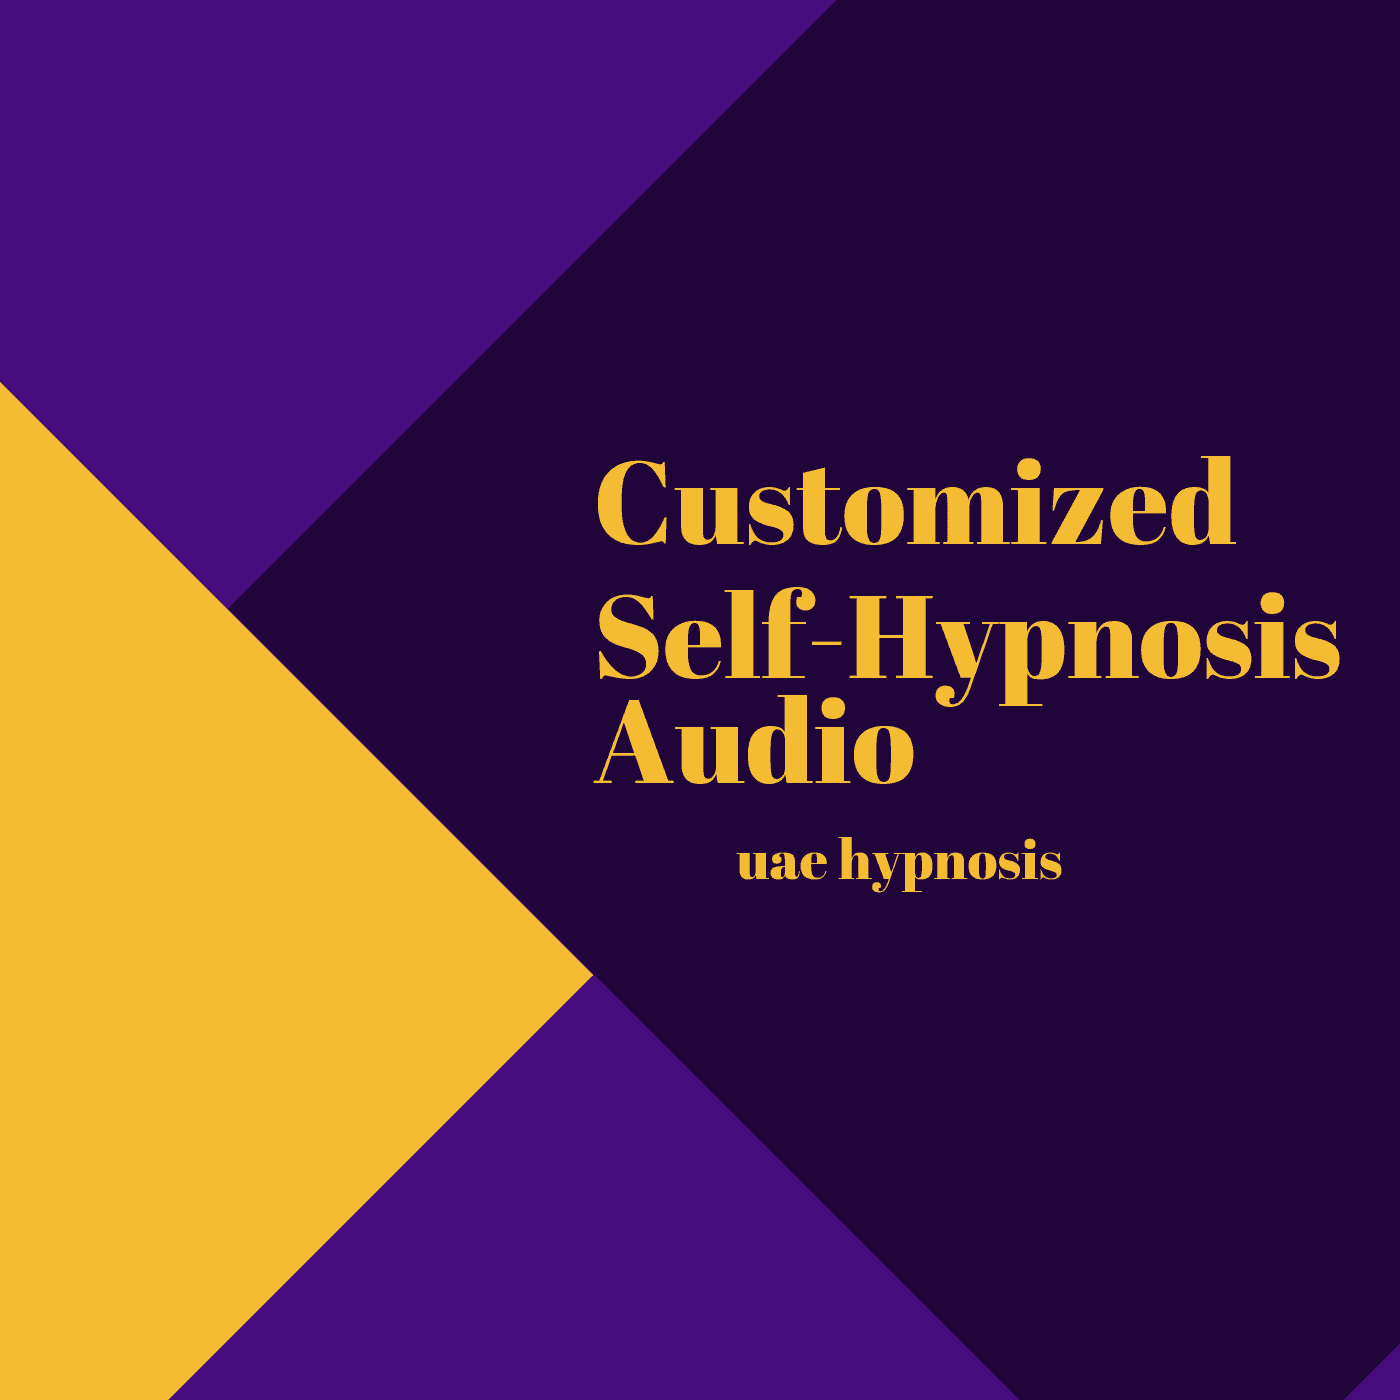 customized self hypnosis audio